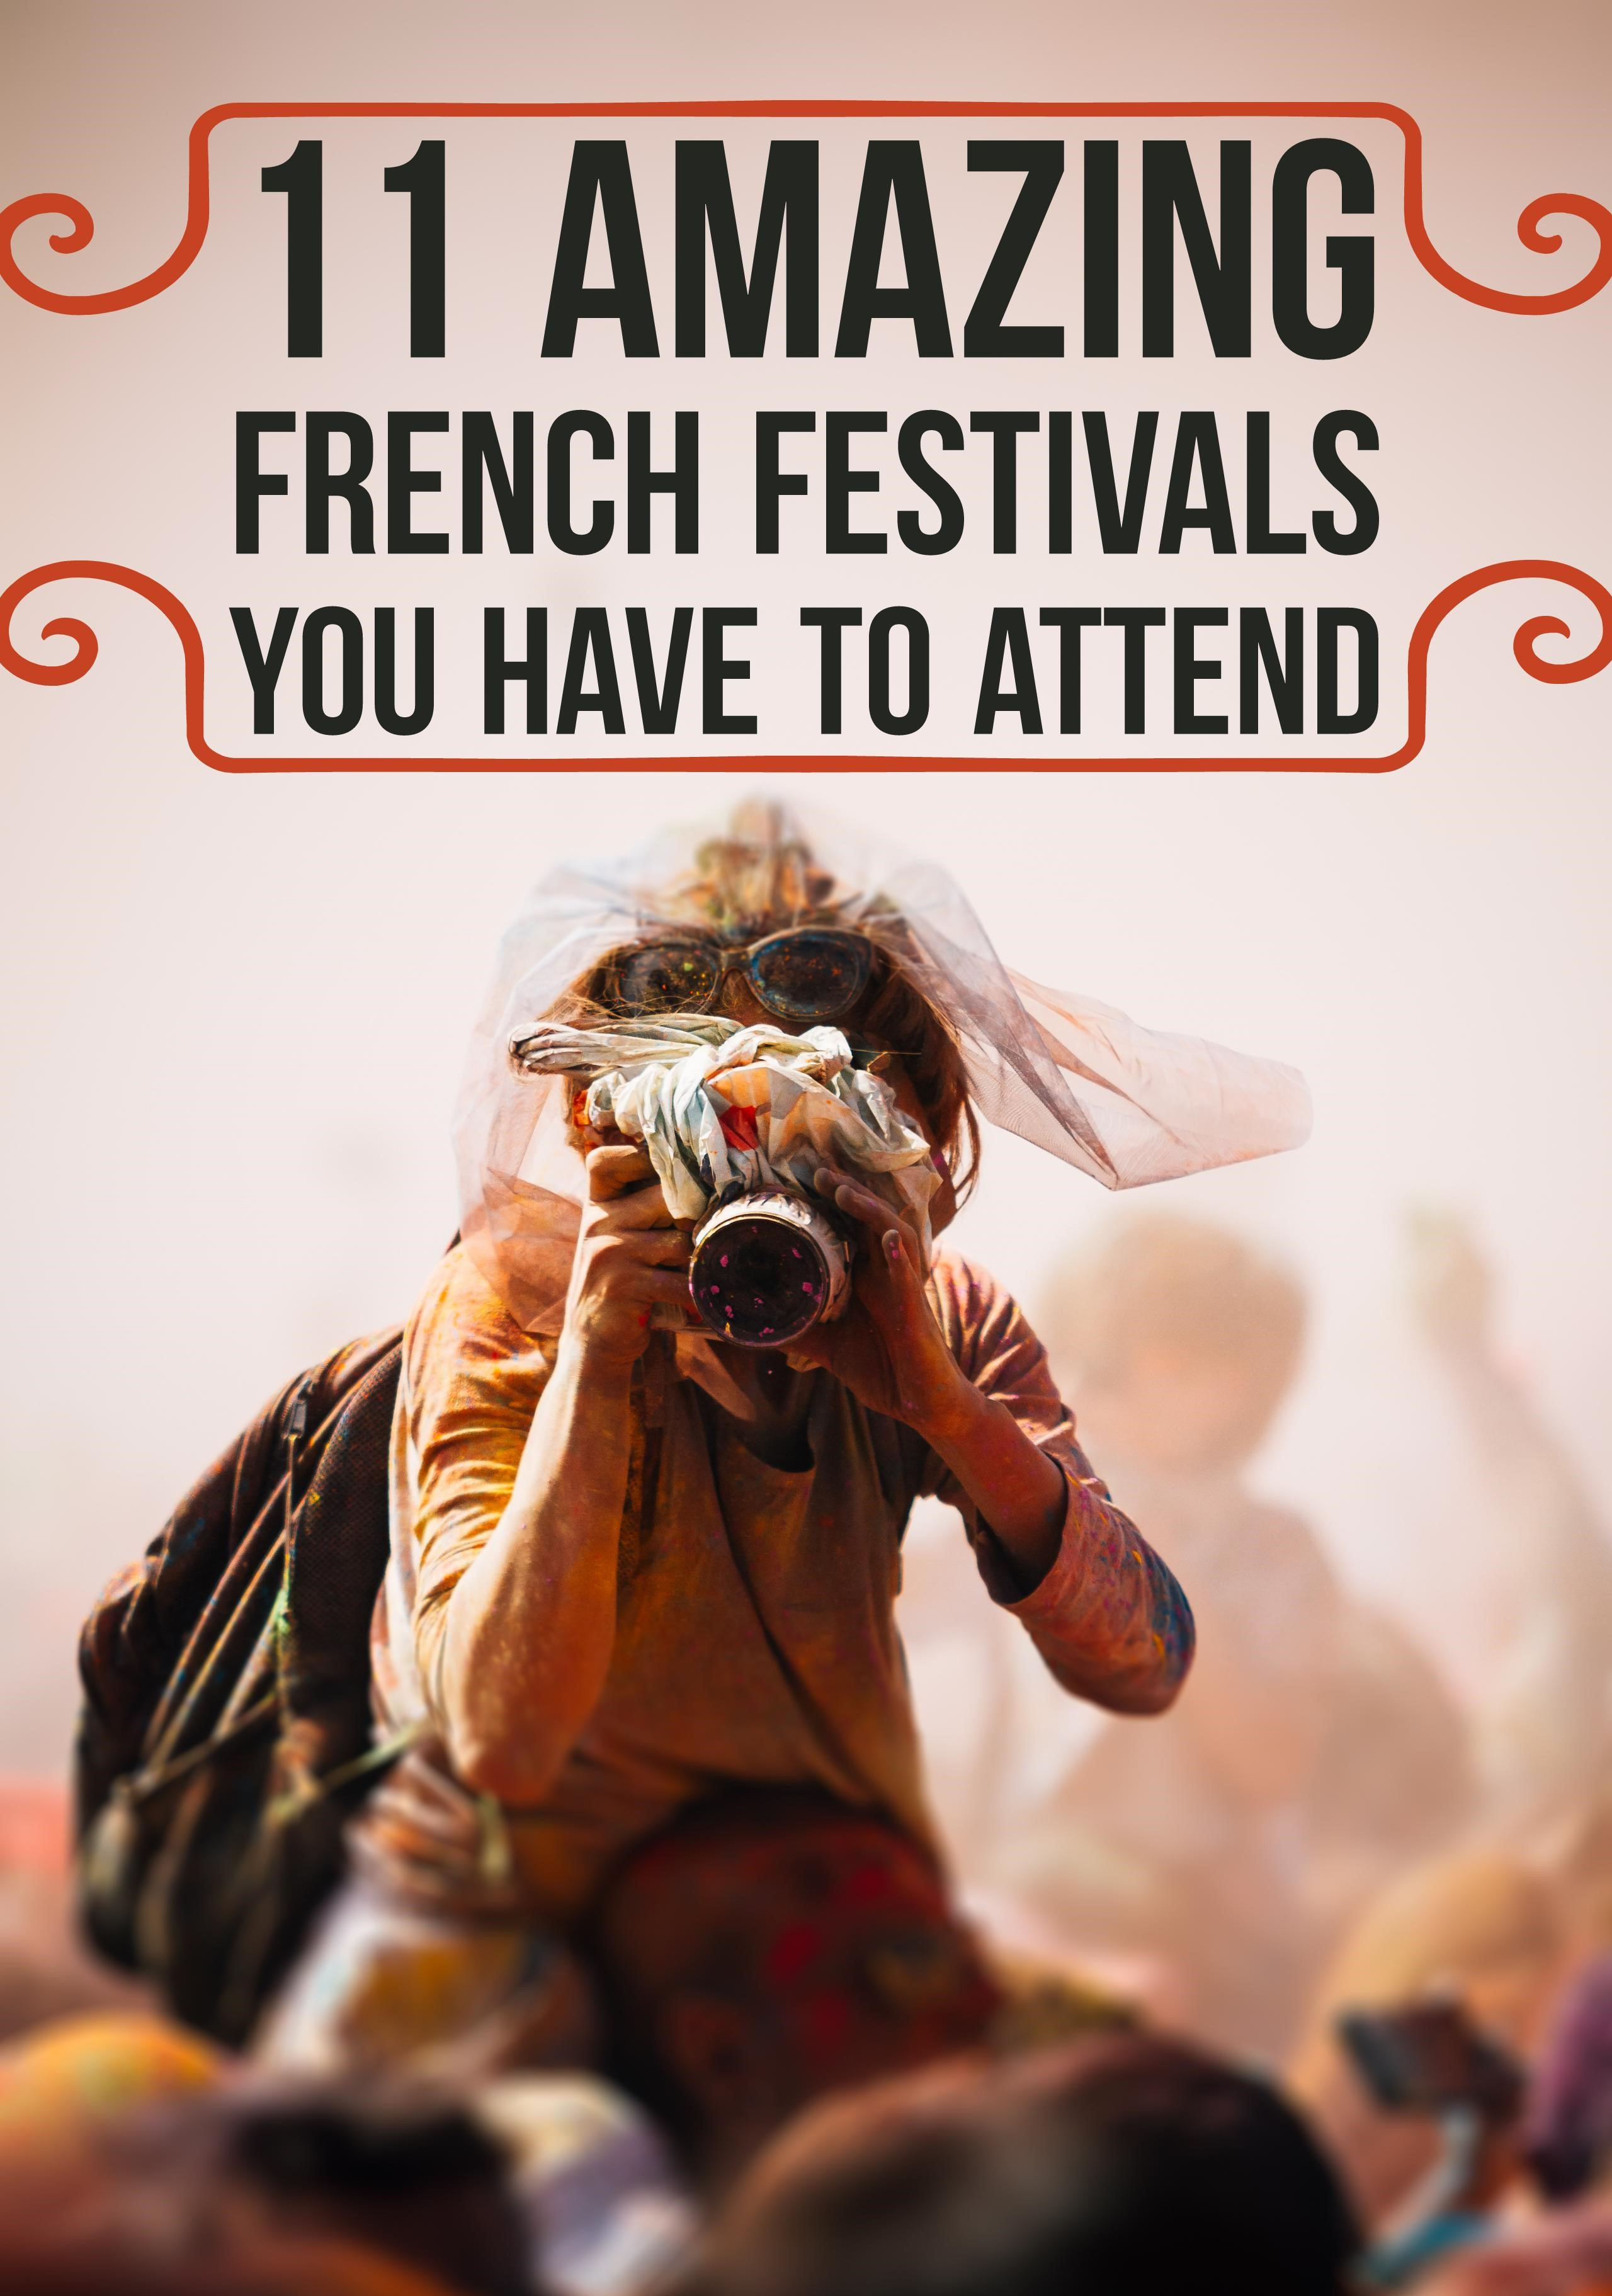 11 Amazing French Festivals You Have To Attend